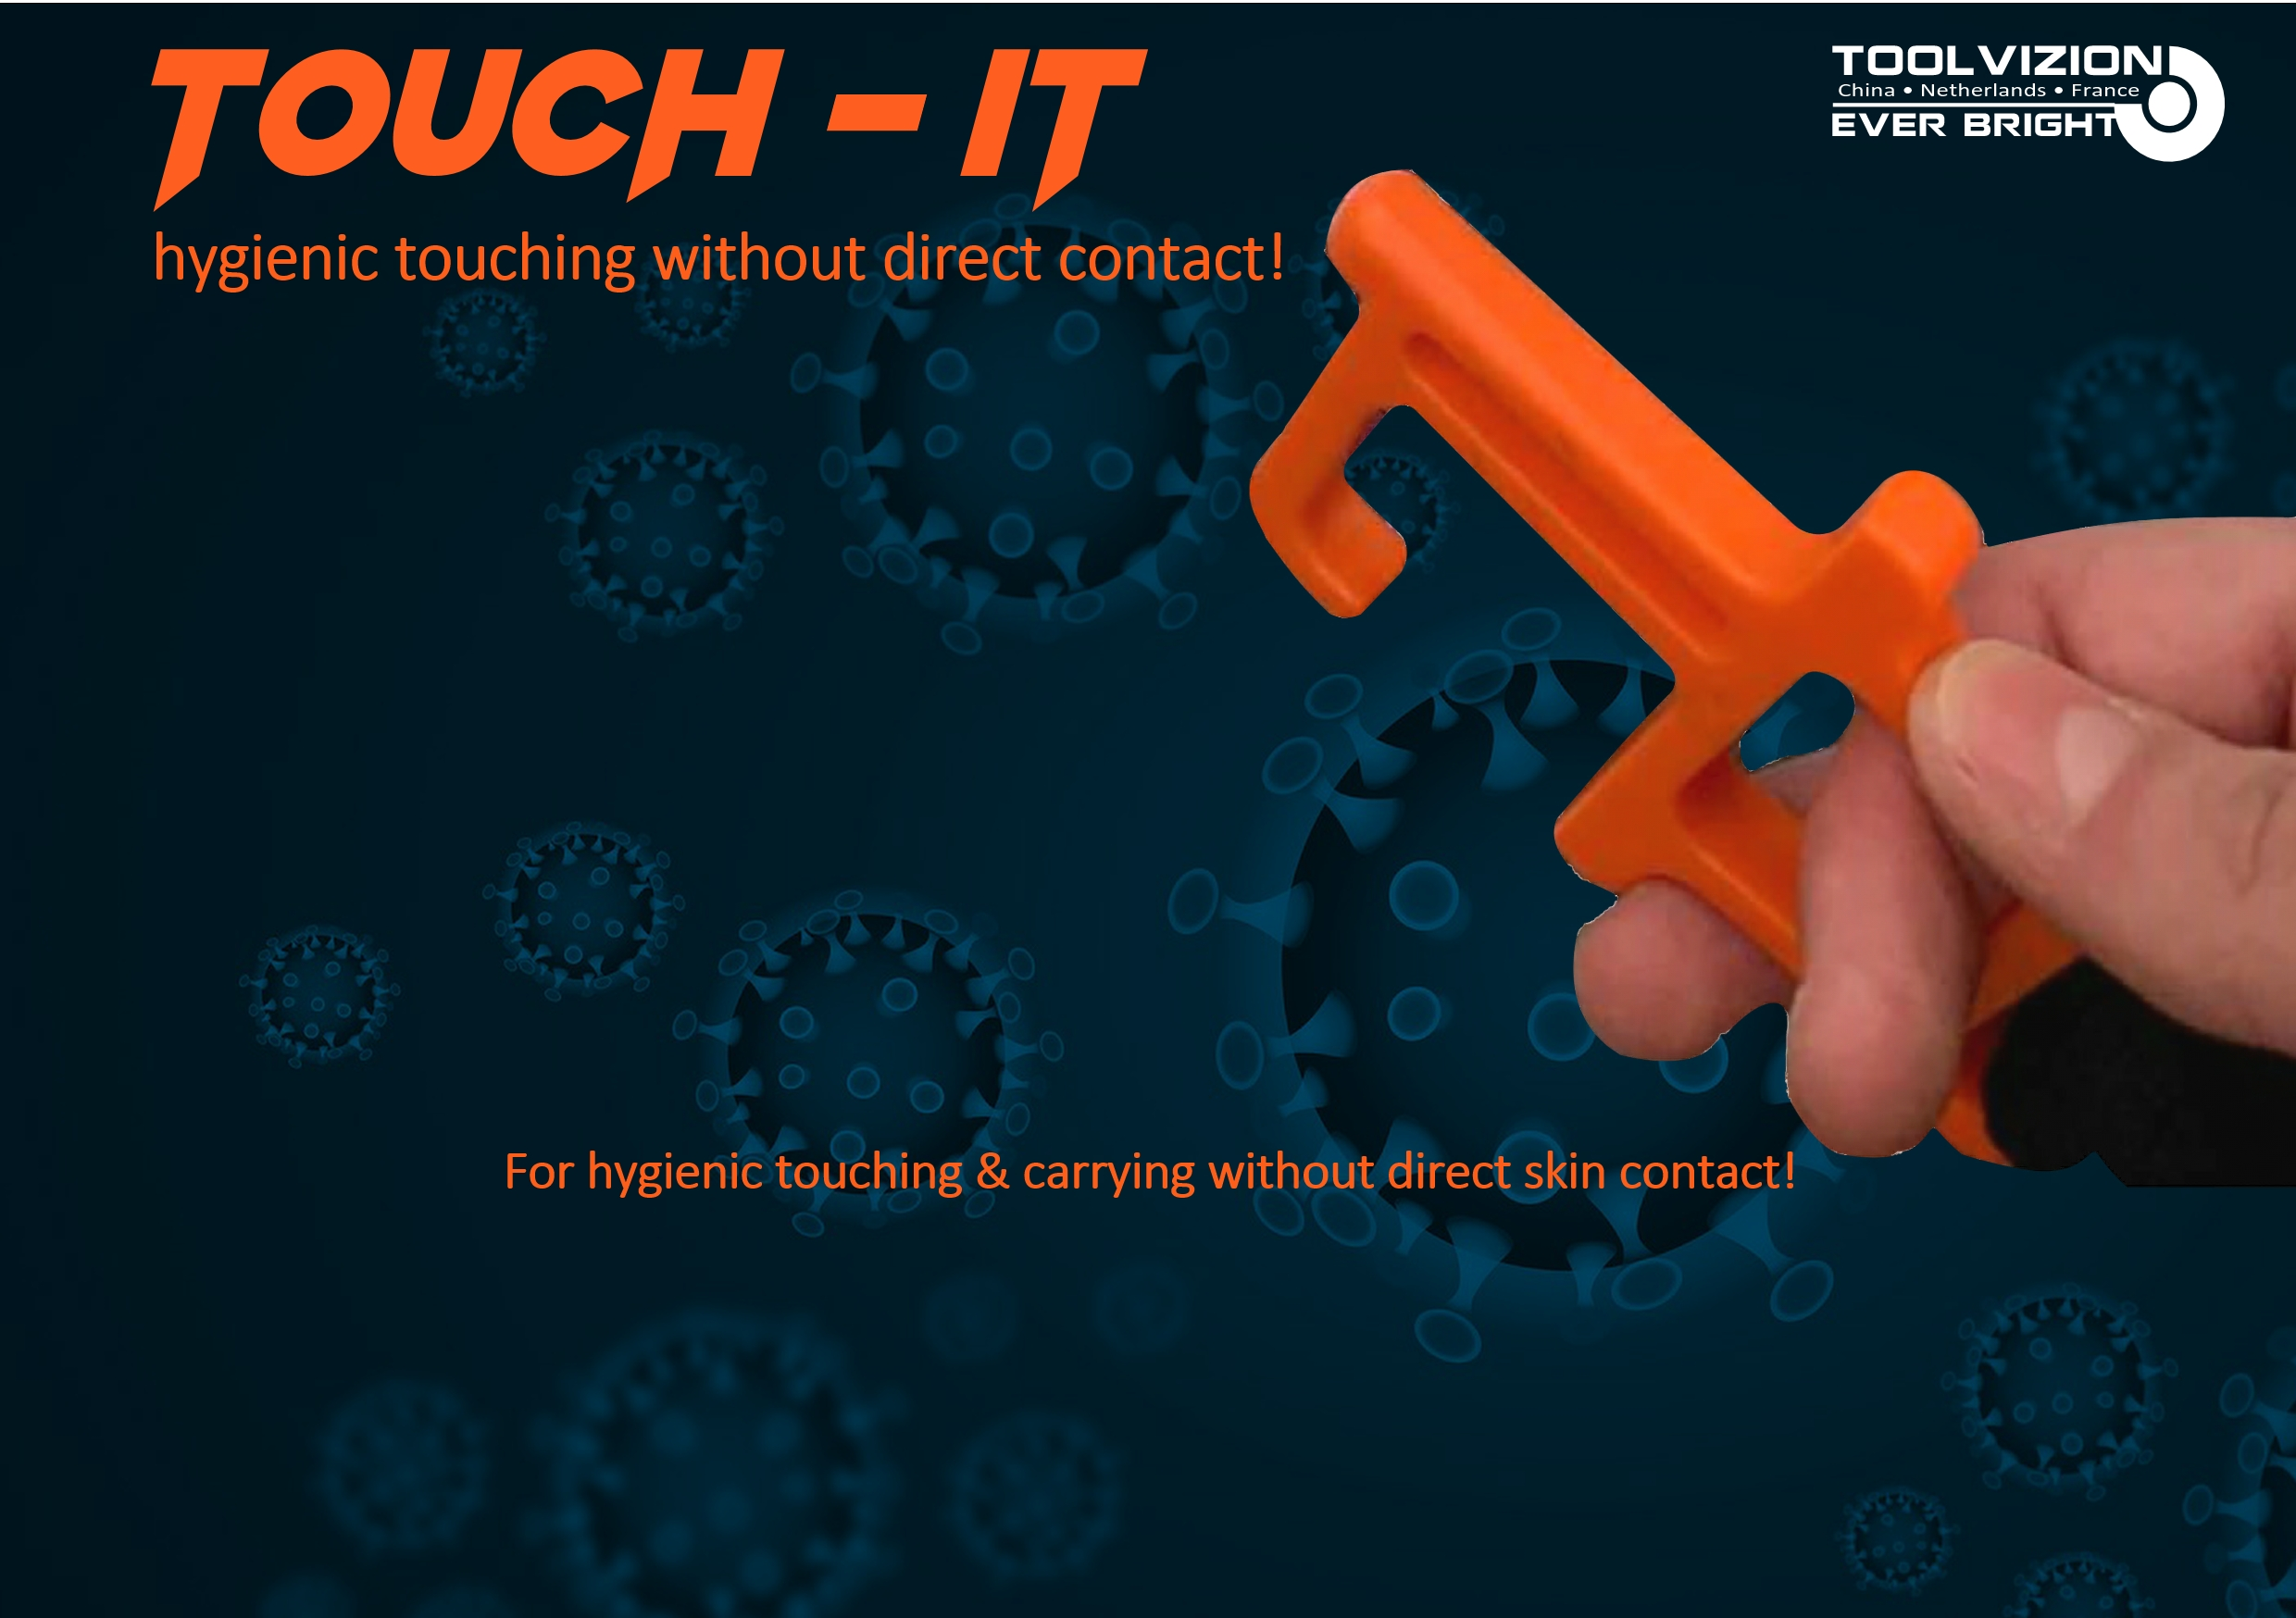 JUNE 2020, the TOUCH-IT